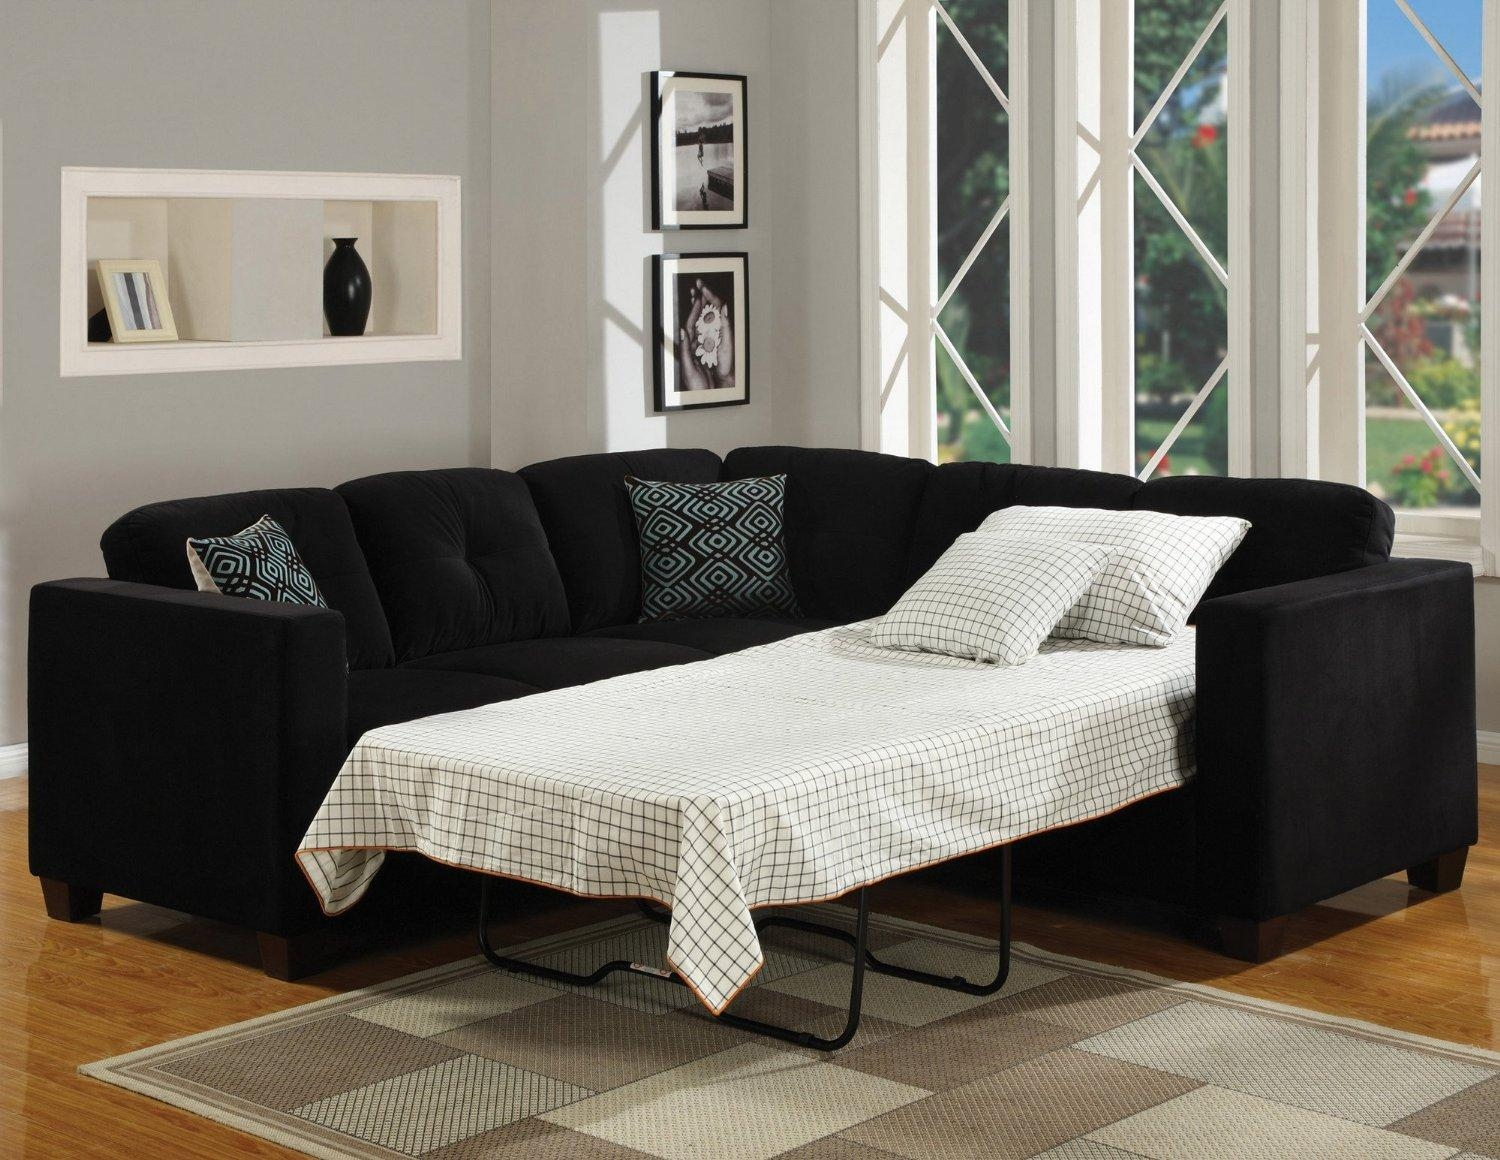 Fresh Sectional Sleeper Sofas On Sale 50 For Your Broyhill In Broyhill Sectional Sleeper Sofas (Image 12 of 20)